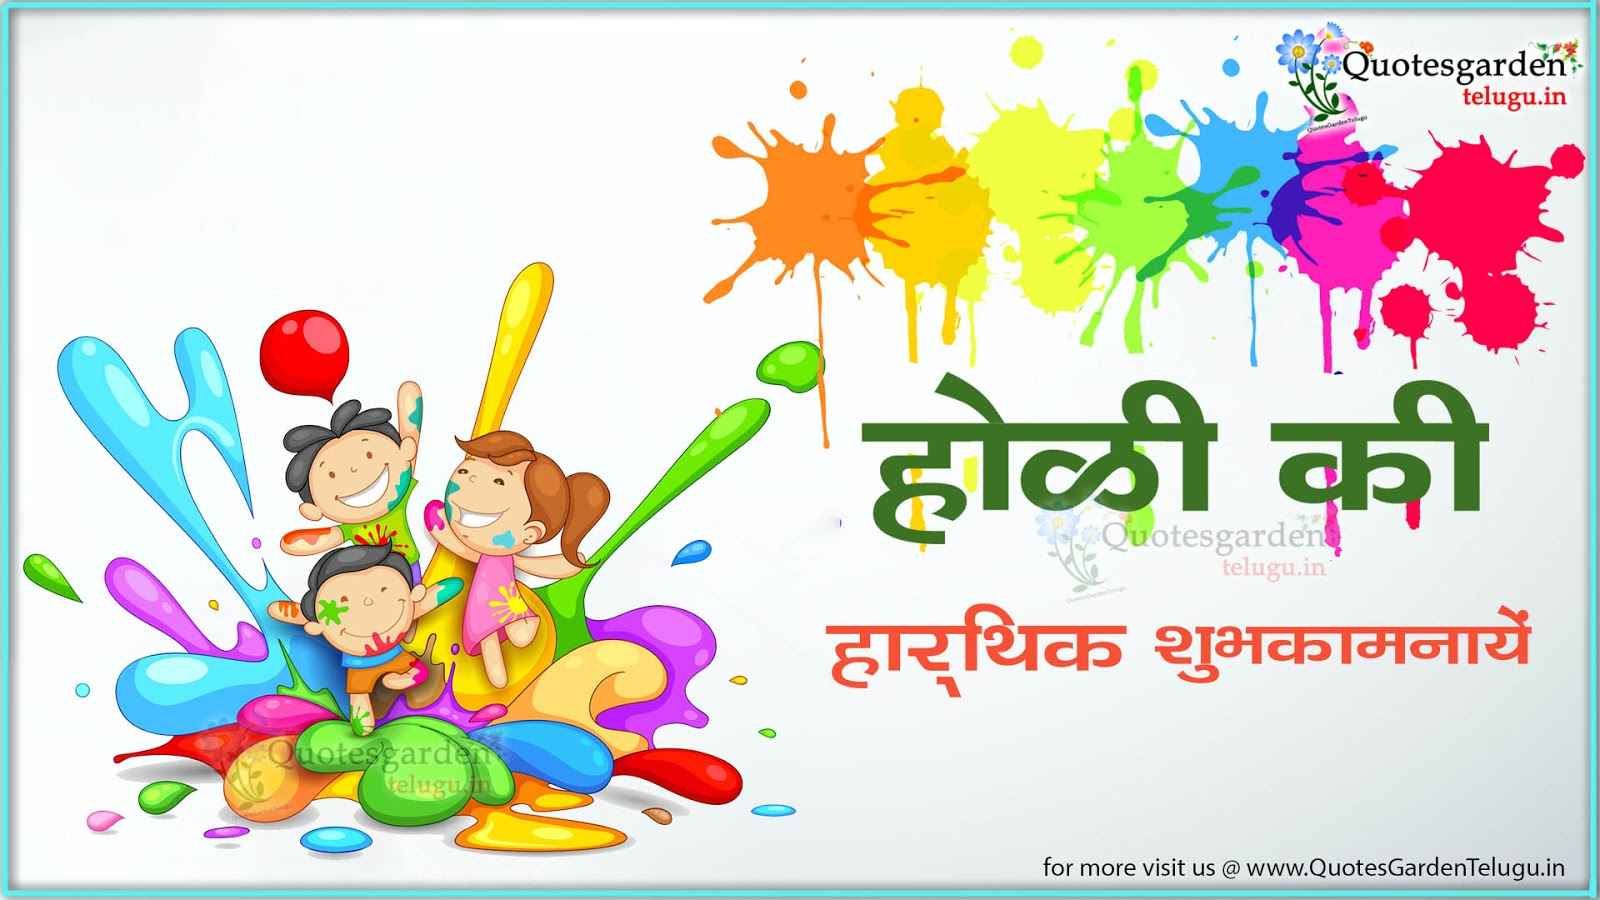 Happy holi greetings sms wishes messages in hindi quotes garden happy holi greetings sms wishes messages in hindi kristyandbryce Images